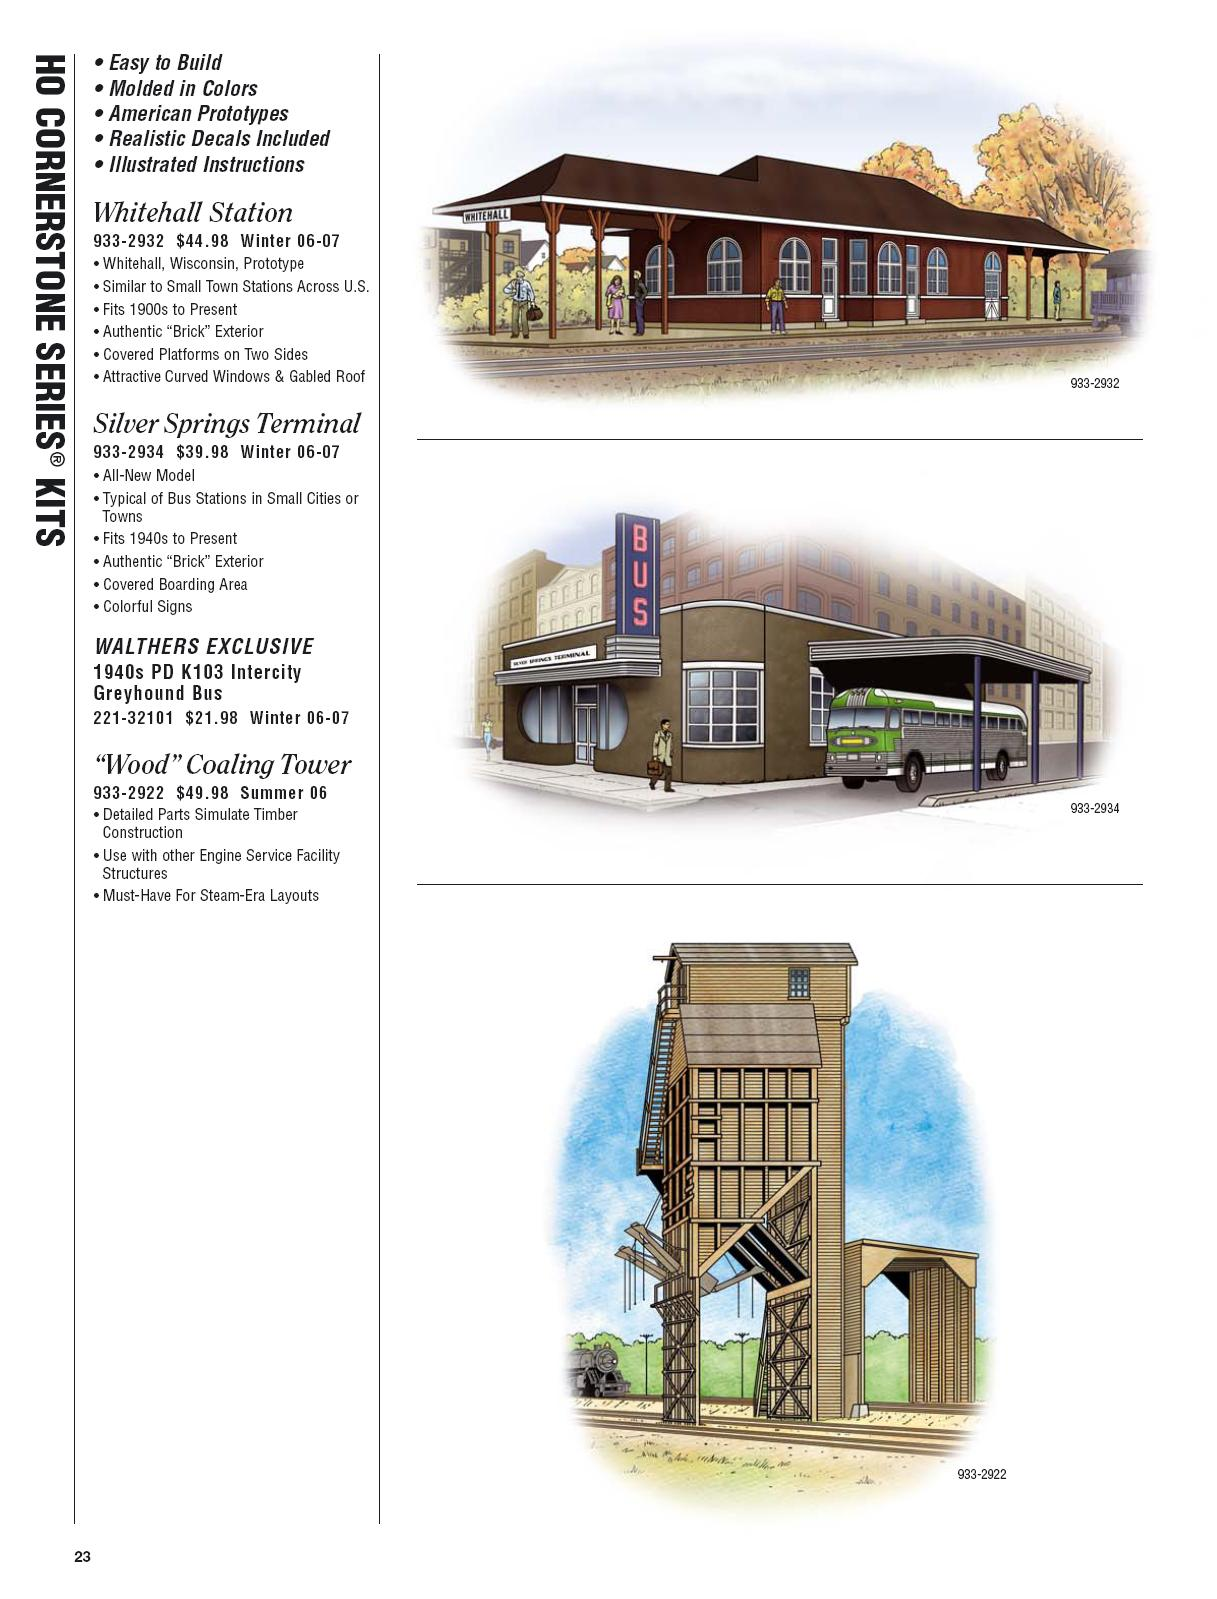 Walthers 2006 Cataloge Buildings page 3